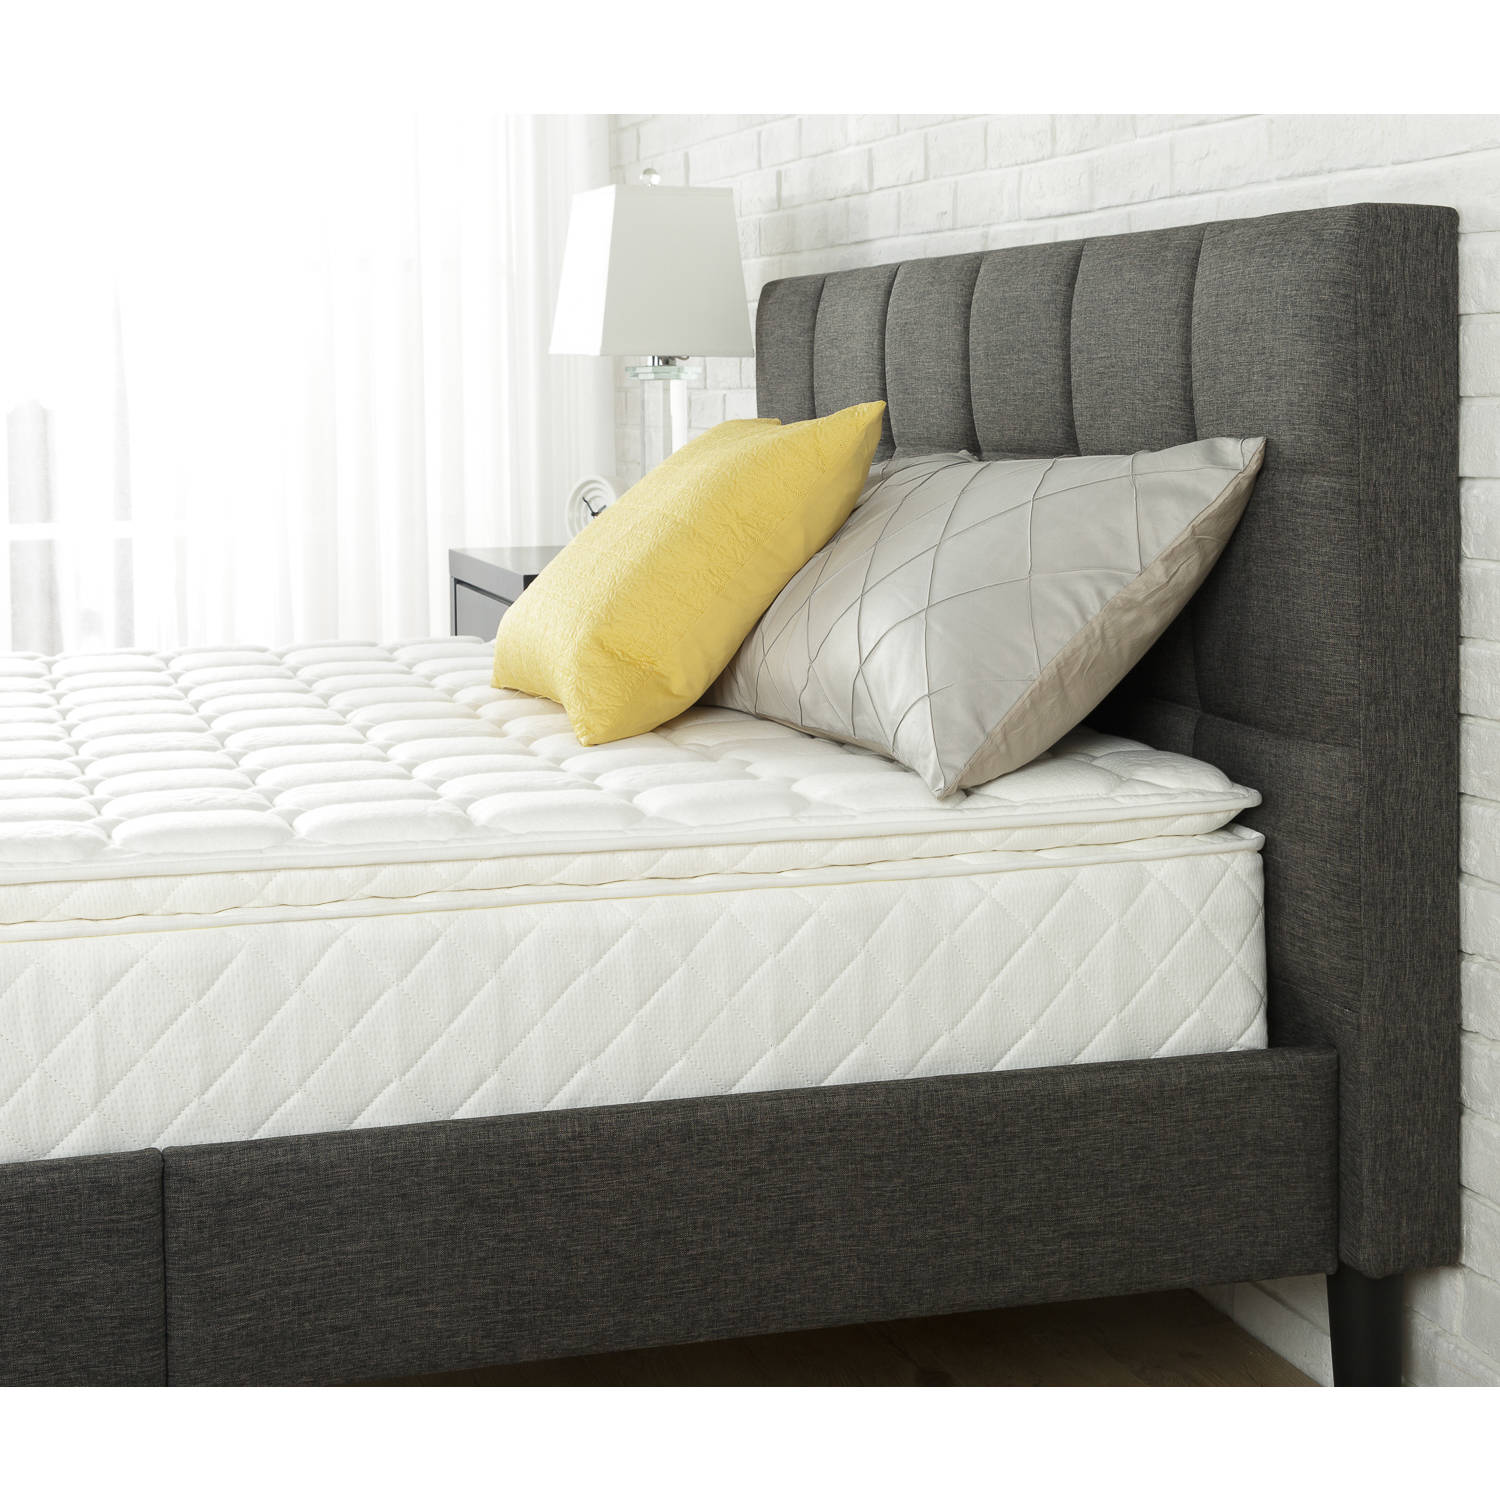 tromsdalen top great your to topper mattress bedroom pillow ikea applied concept reviews queen residence regarding